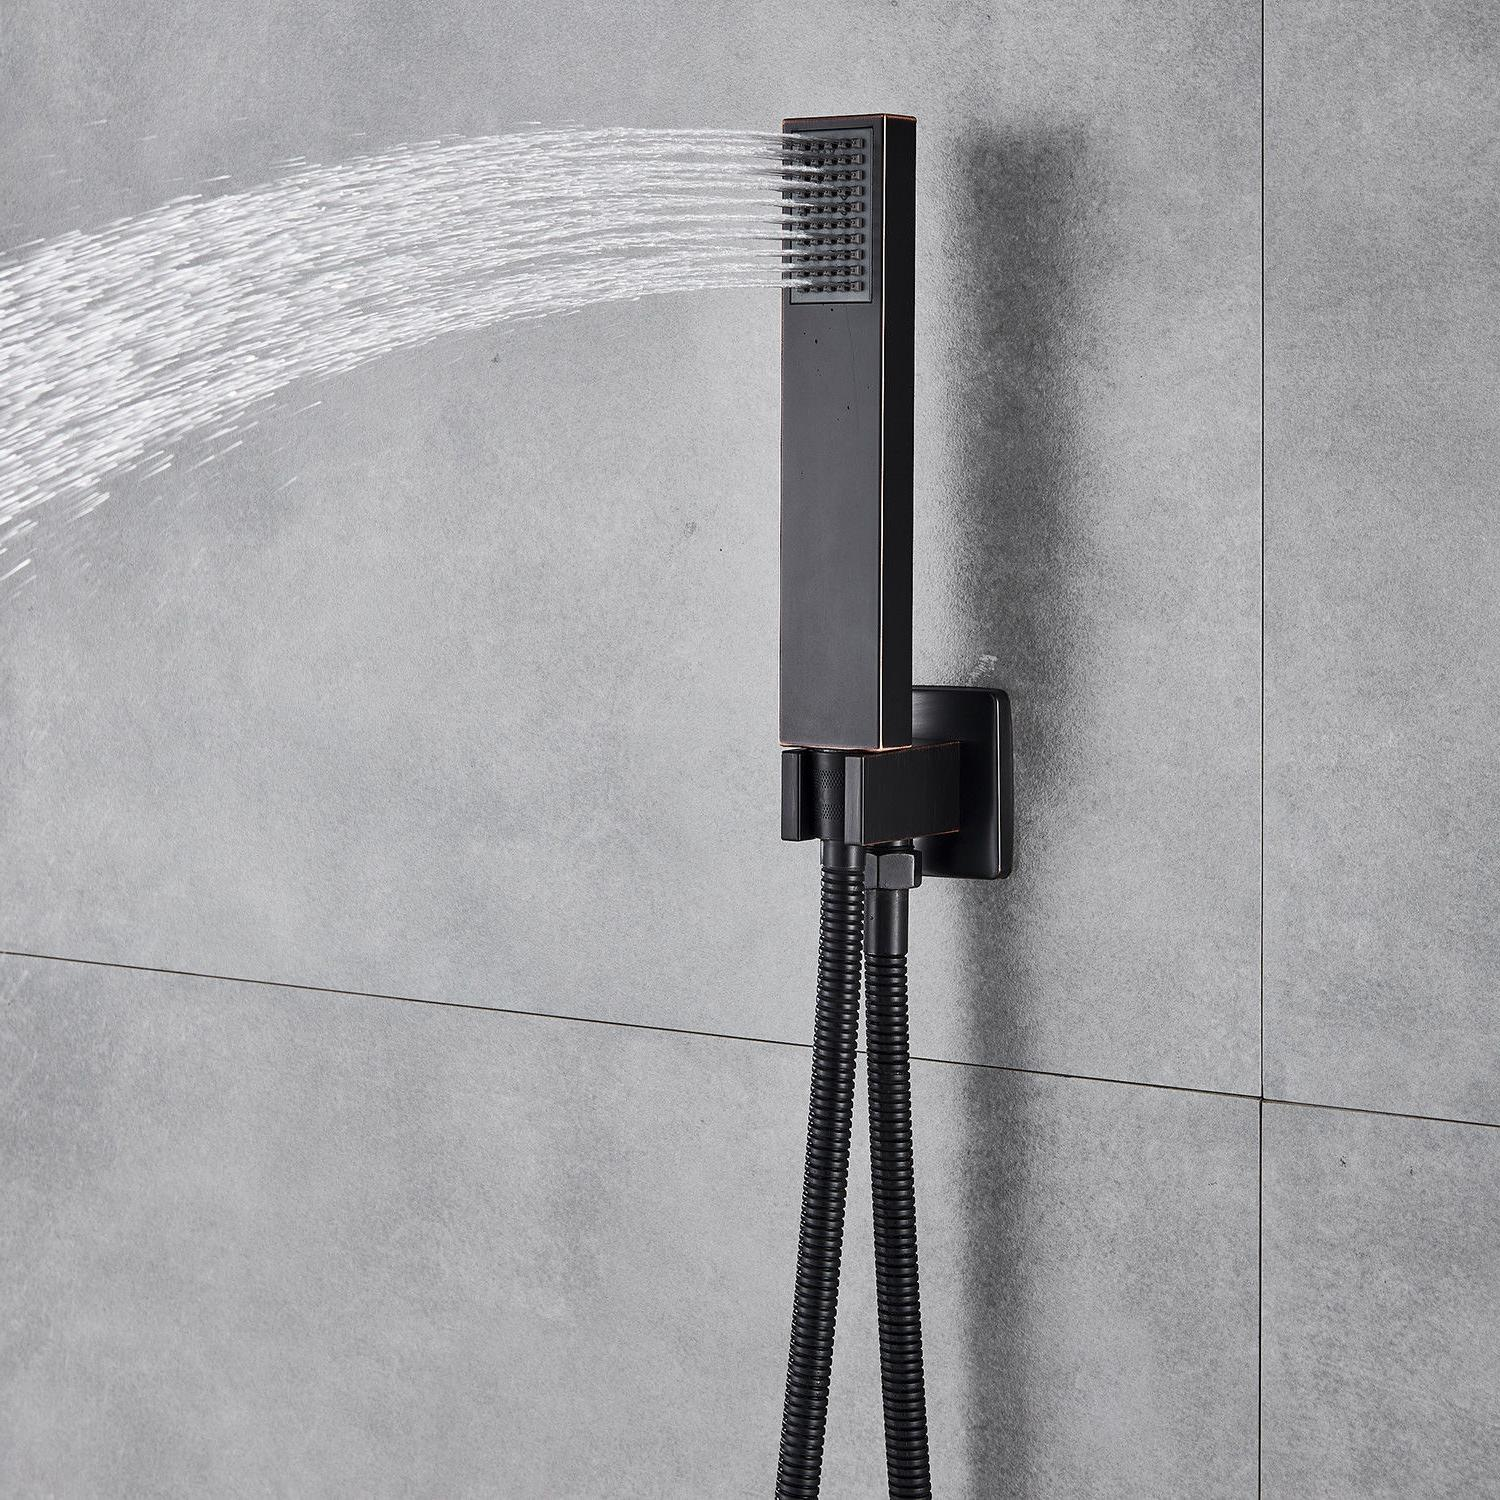 Wall Oil Rubbed Bronze Shower Faucet Shower Head